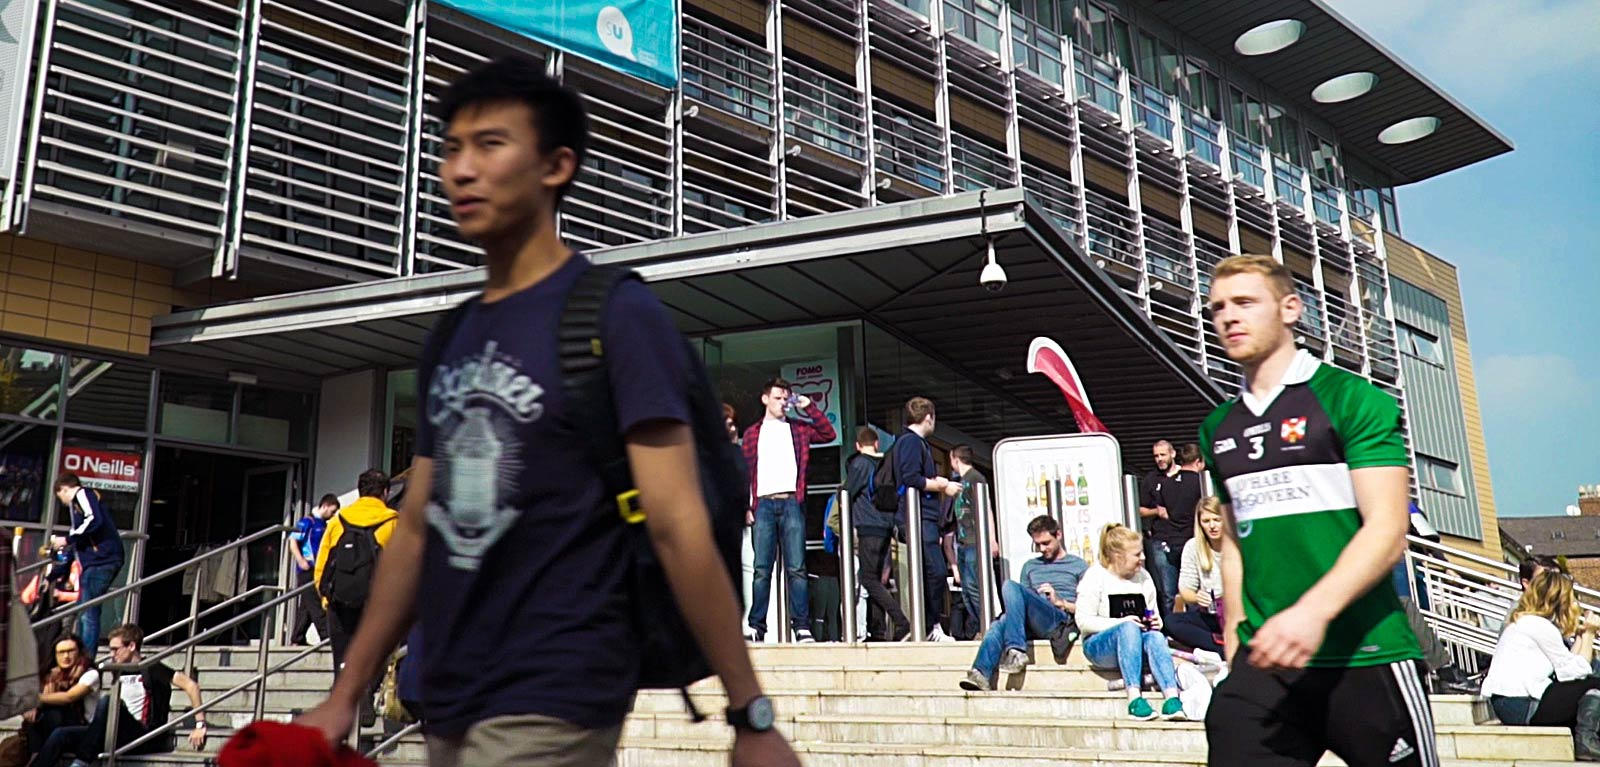 students walking past the exterior of the Queen's University Belfast Students' Union (QUBSU)